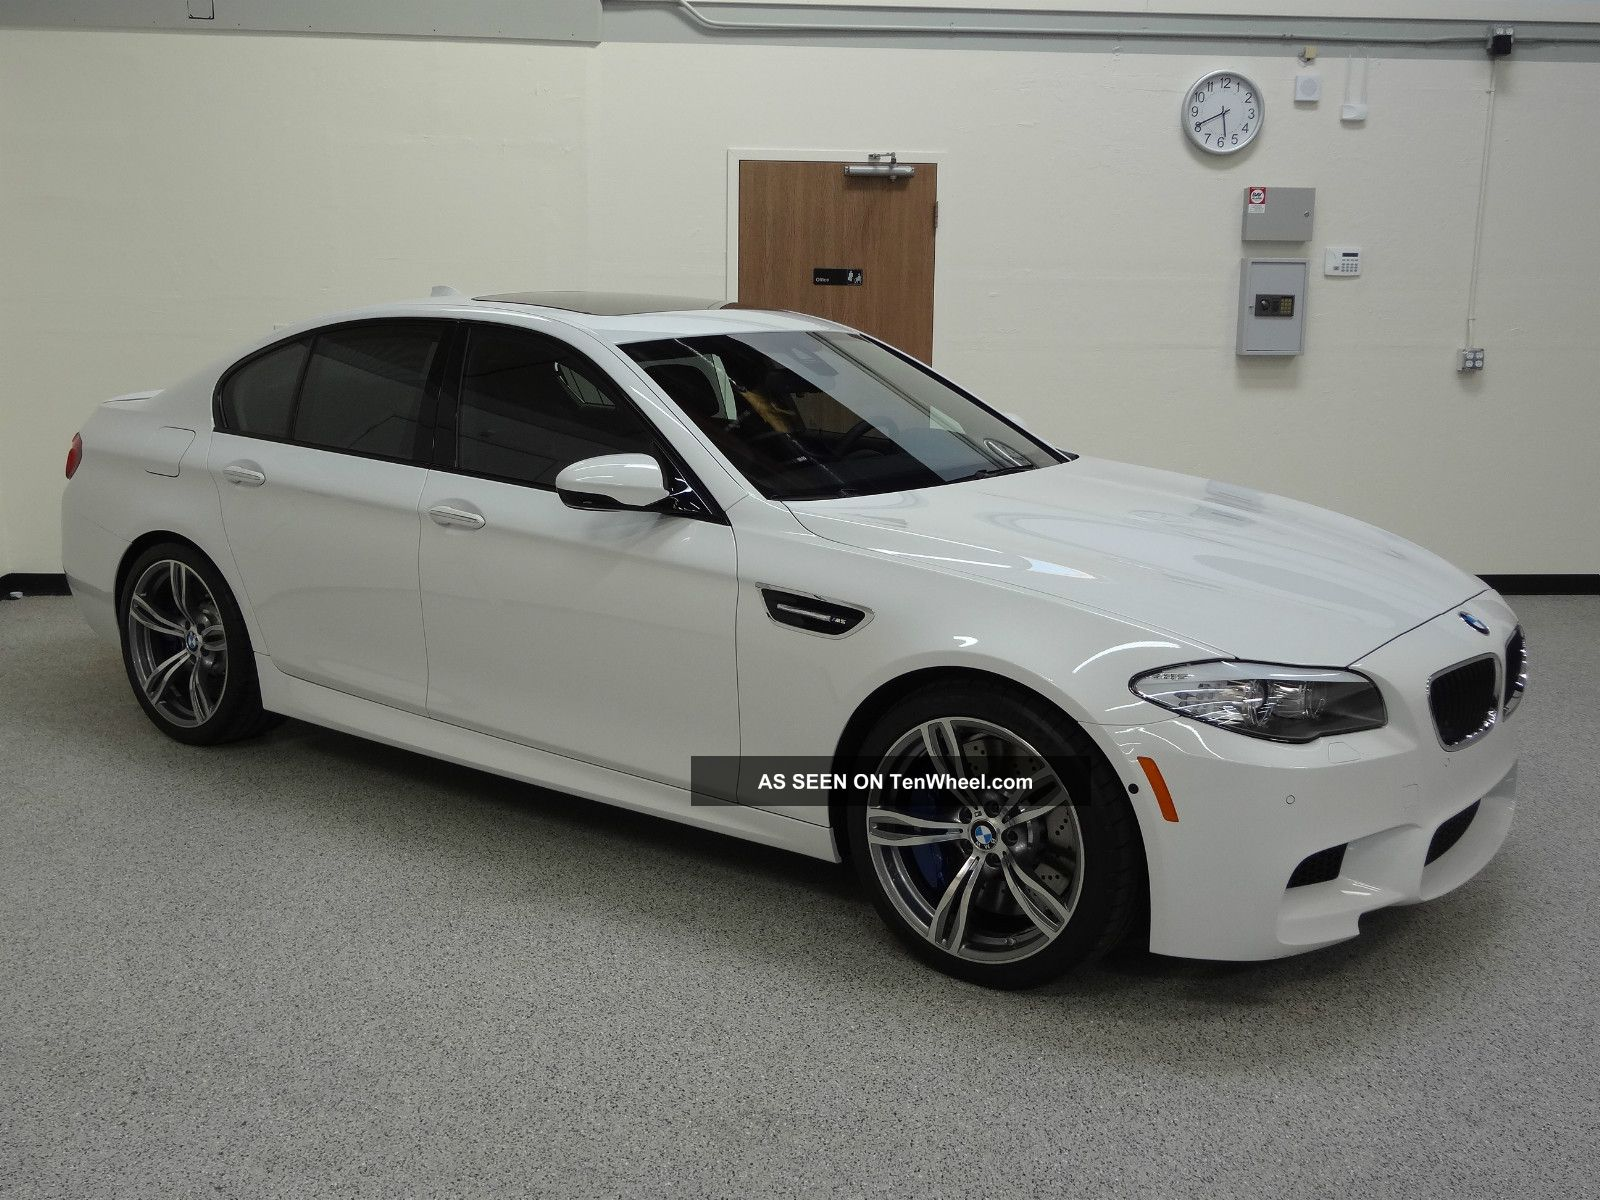 2013 bmw m5 rare 6mt executive package grand touring sport sedan. Black Bedroom Furniture Sets. Home Design Ideas